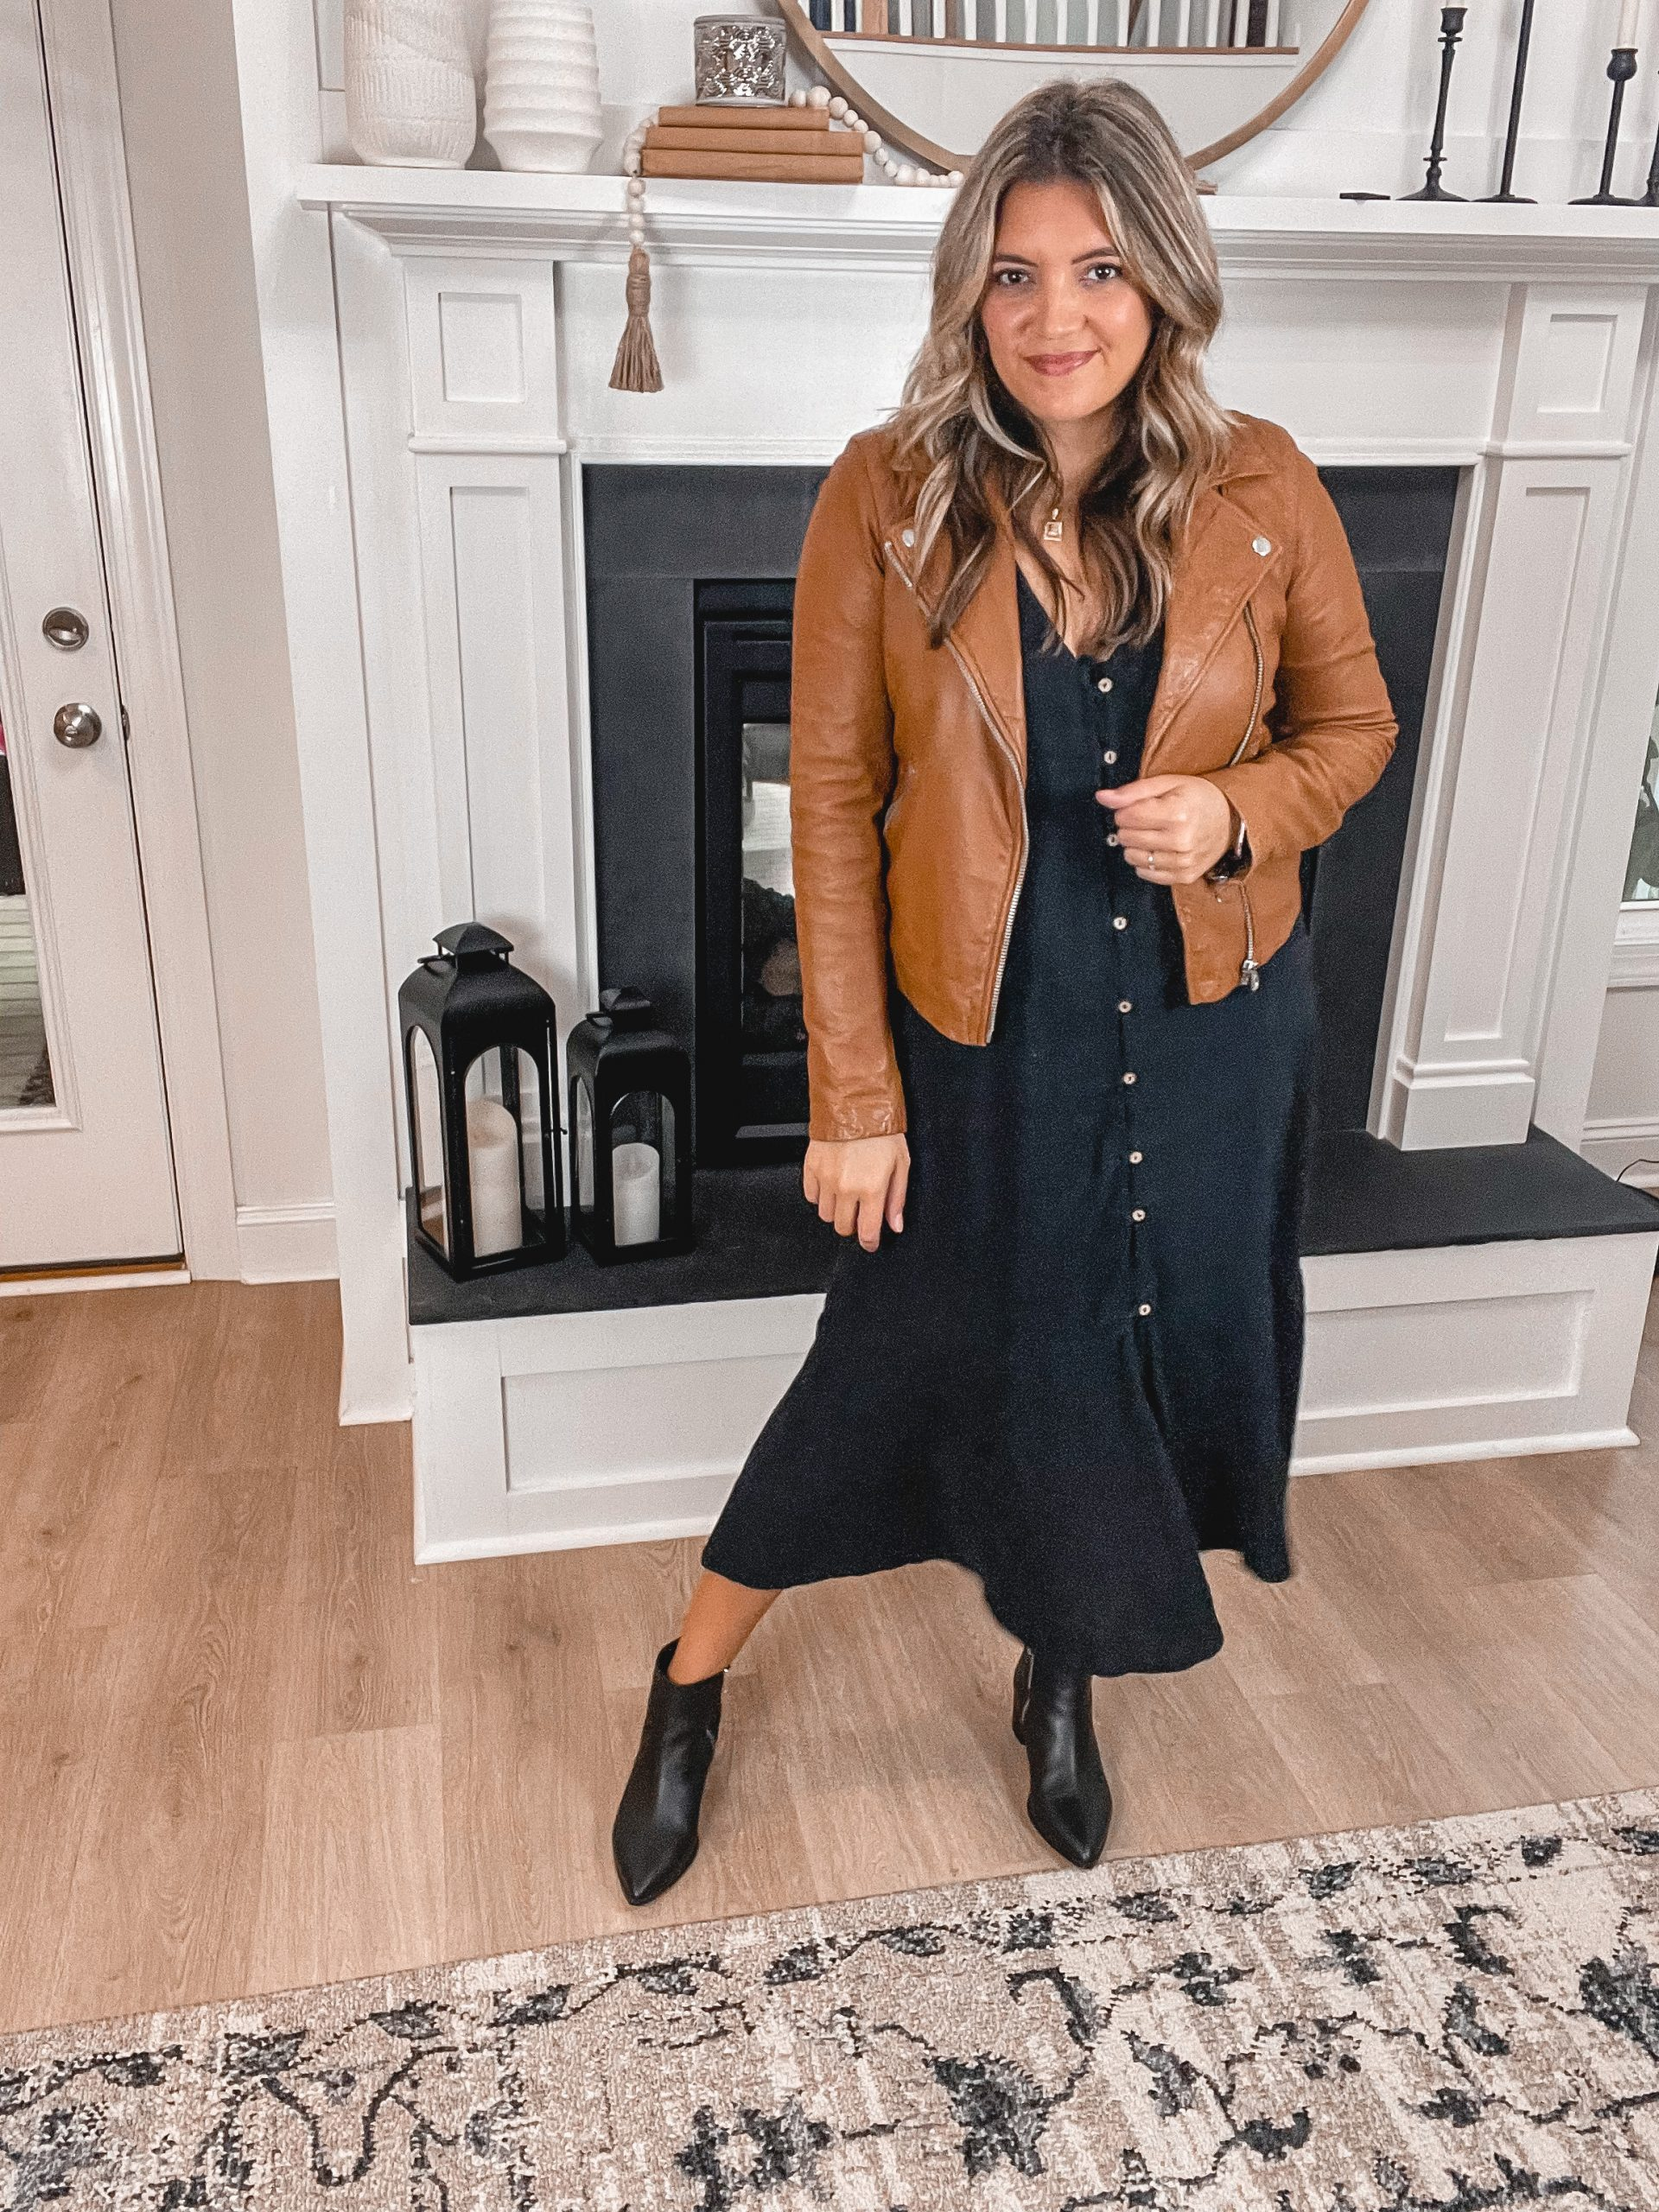 Virginia blogger, Lauren Dix, shares five brown leather jacket outfits for fall.